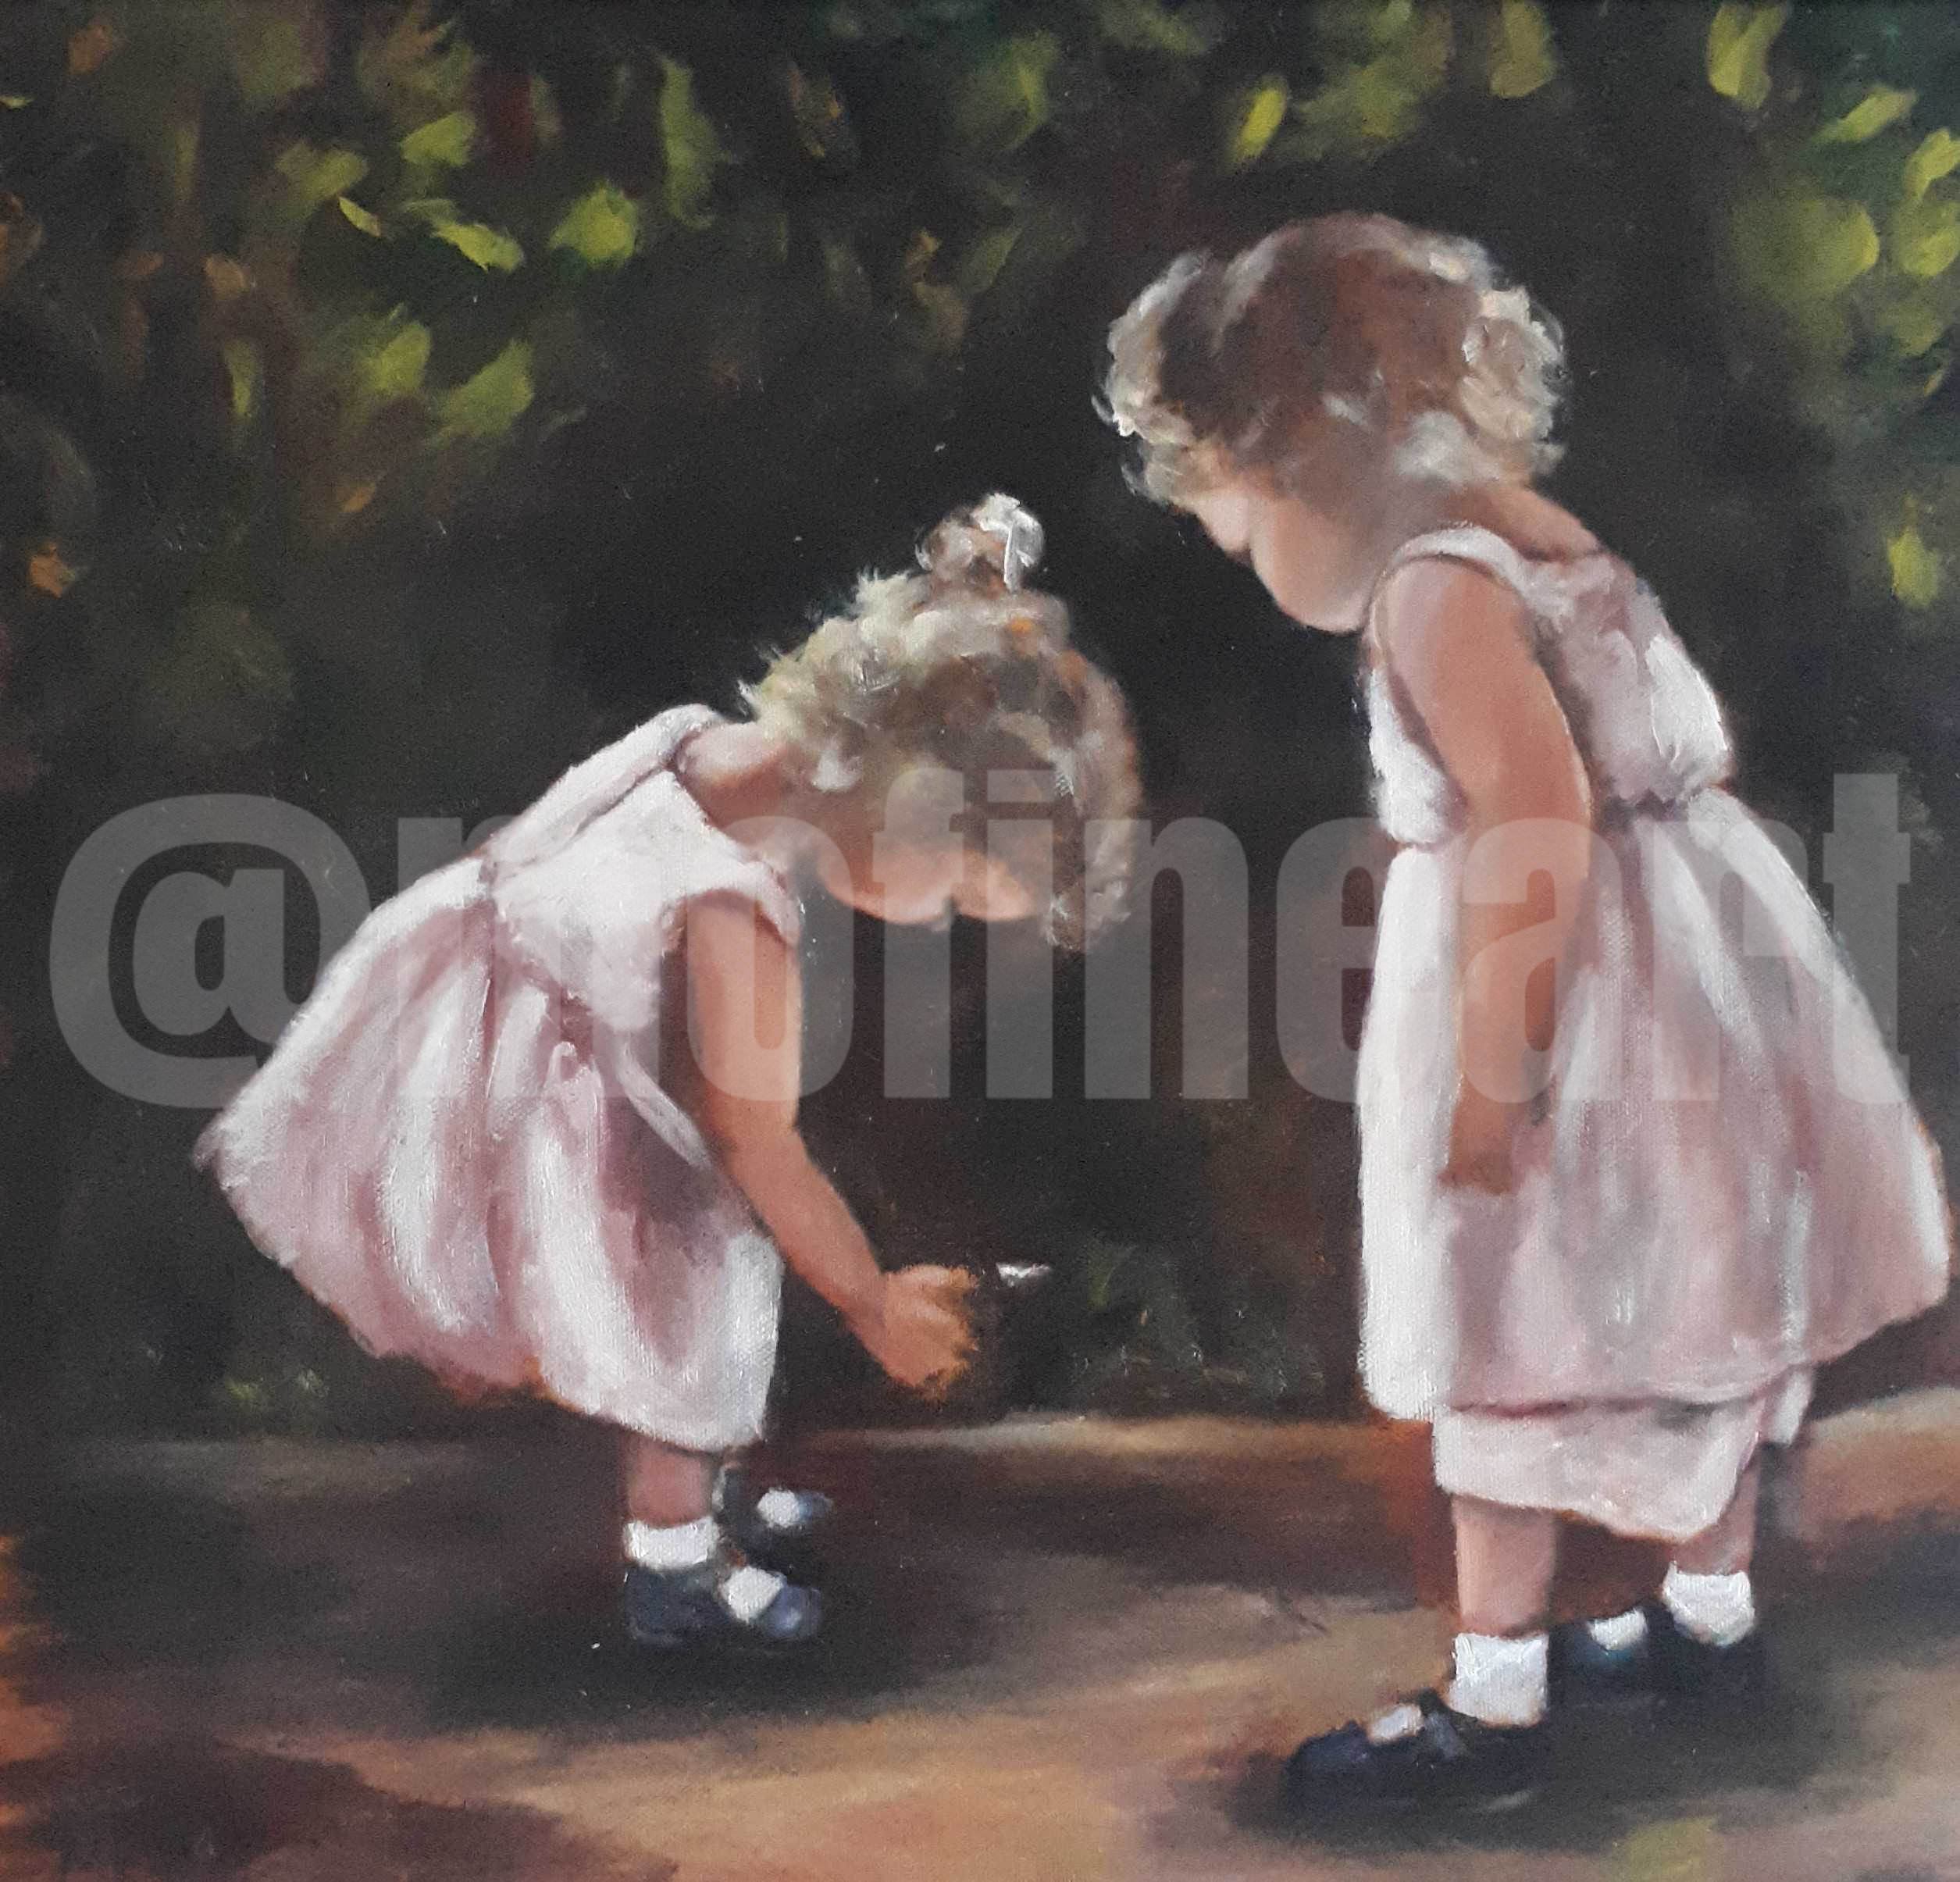 Two little girls pig tails pink dresses a feather